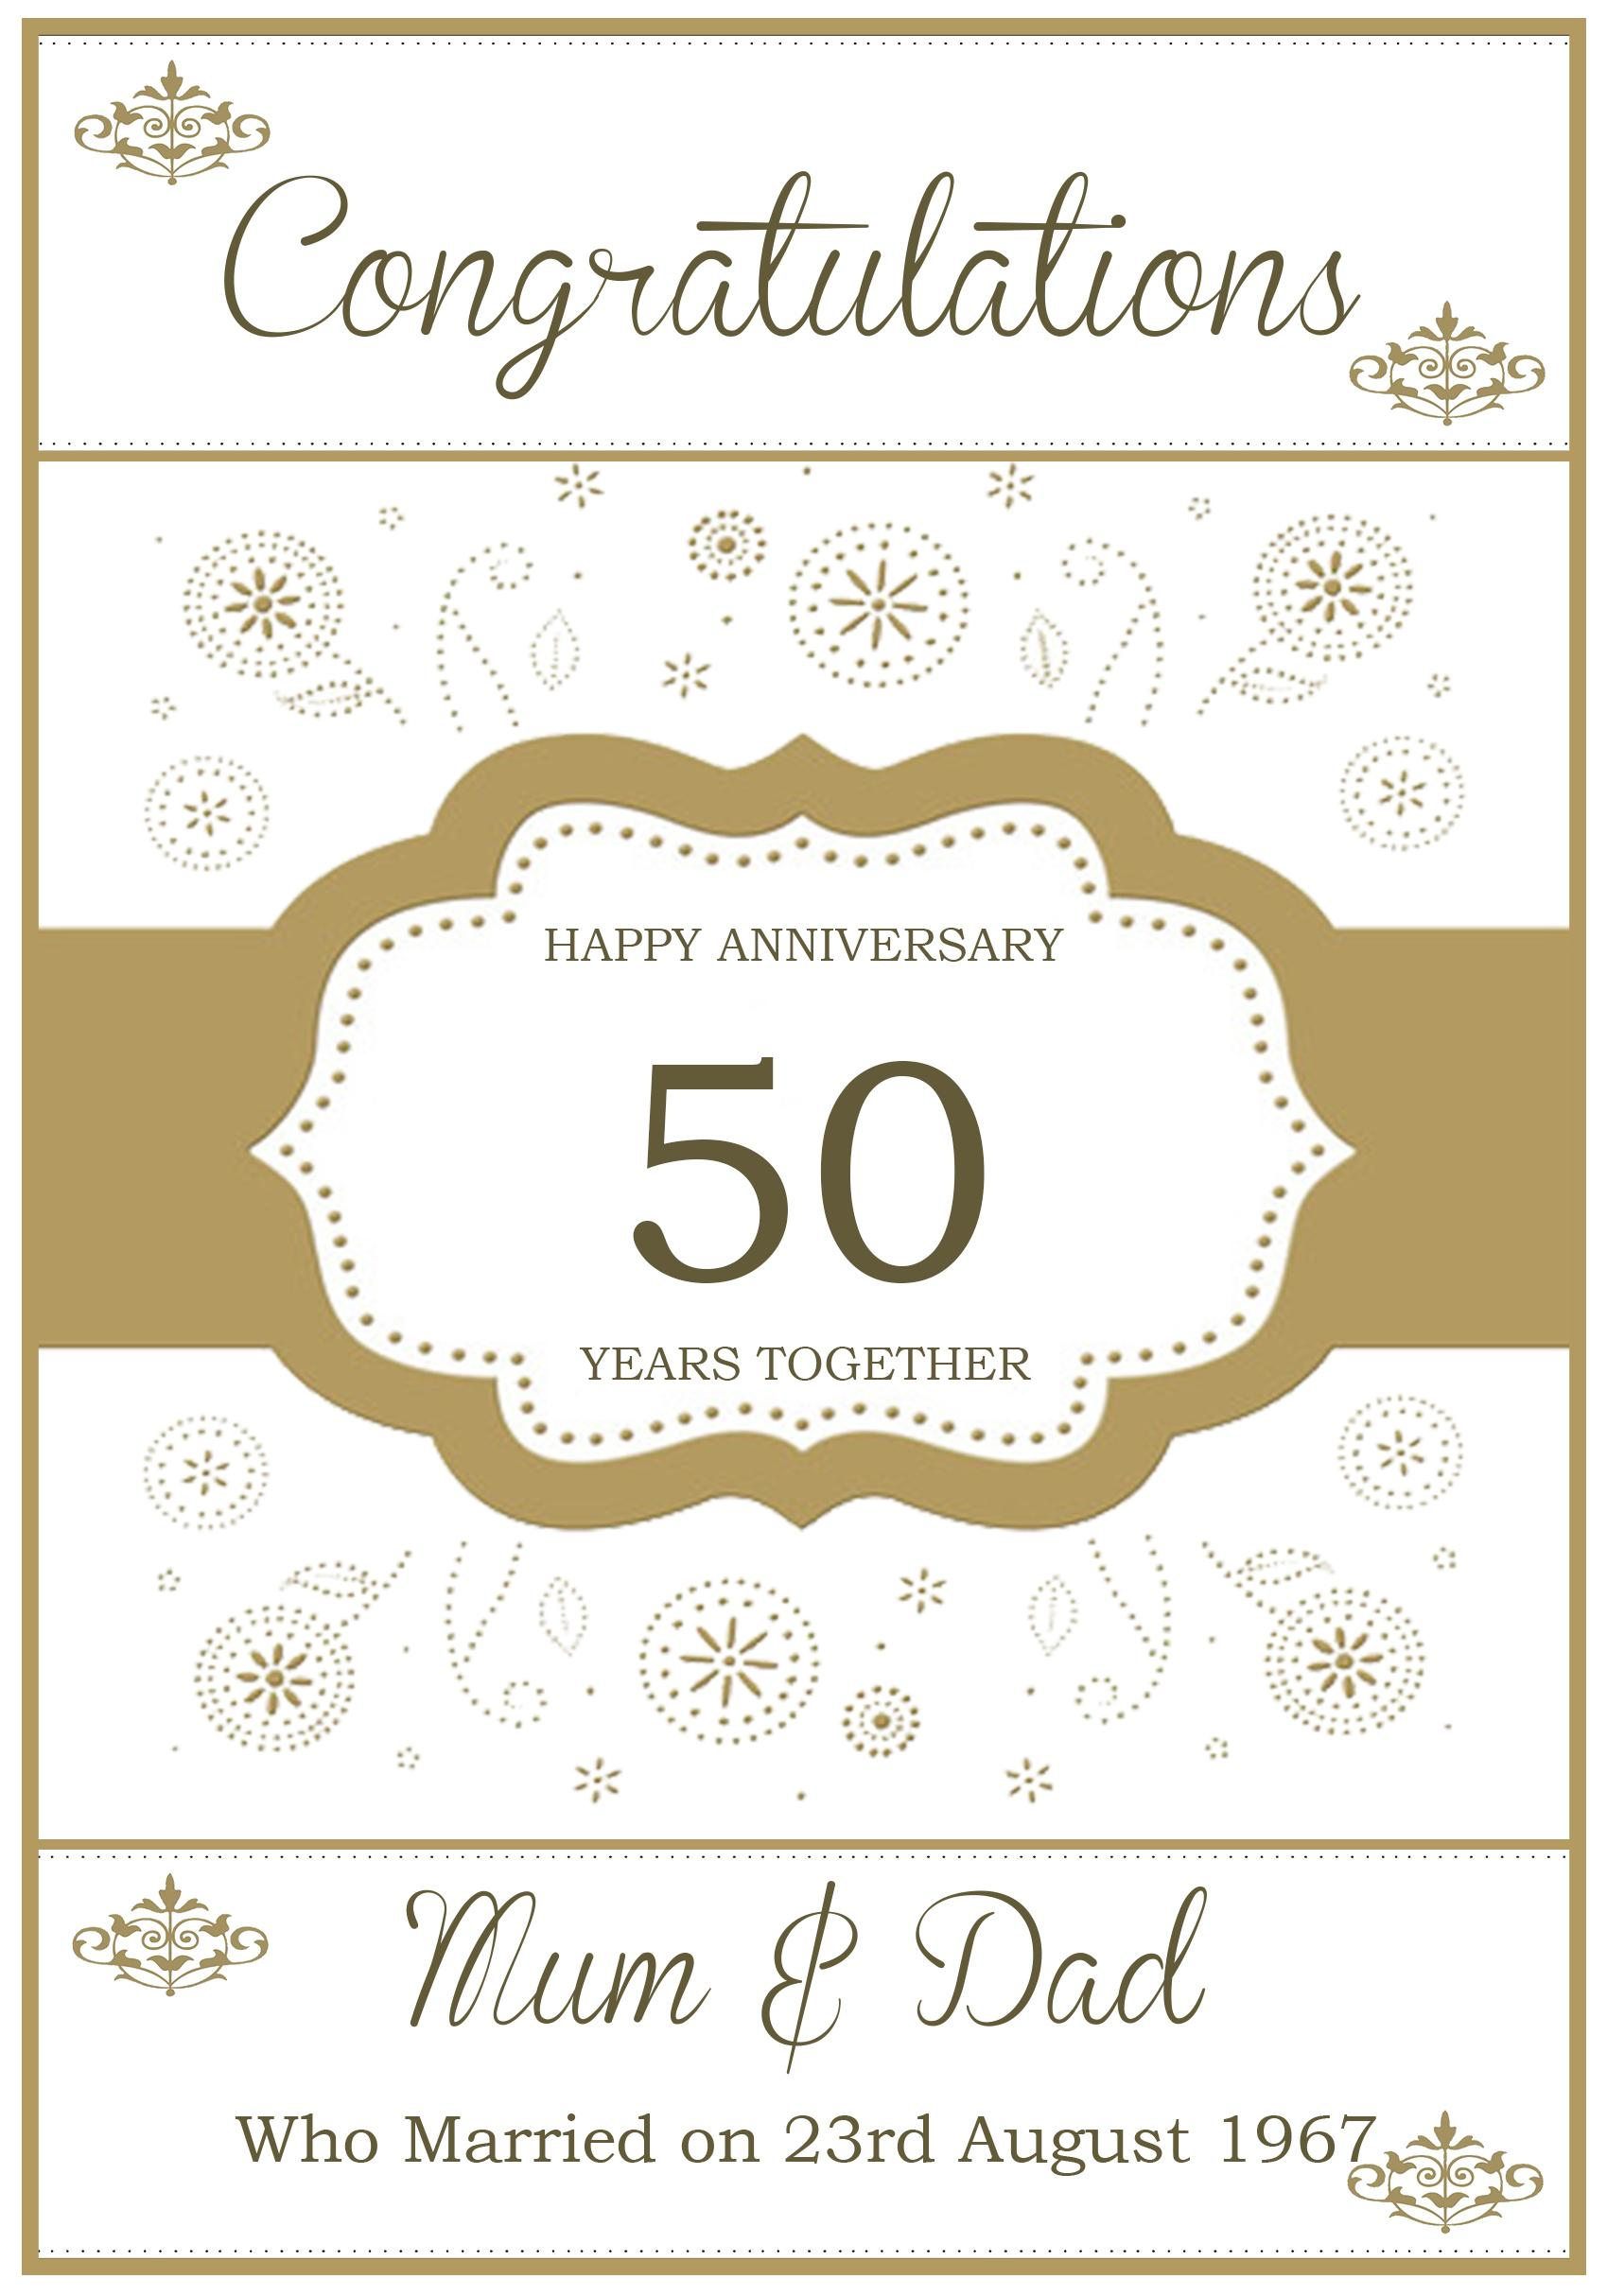 Golden Celebrations Anniversary Card